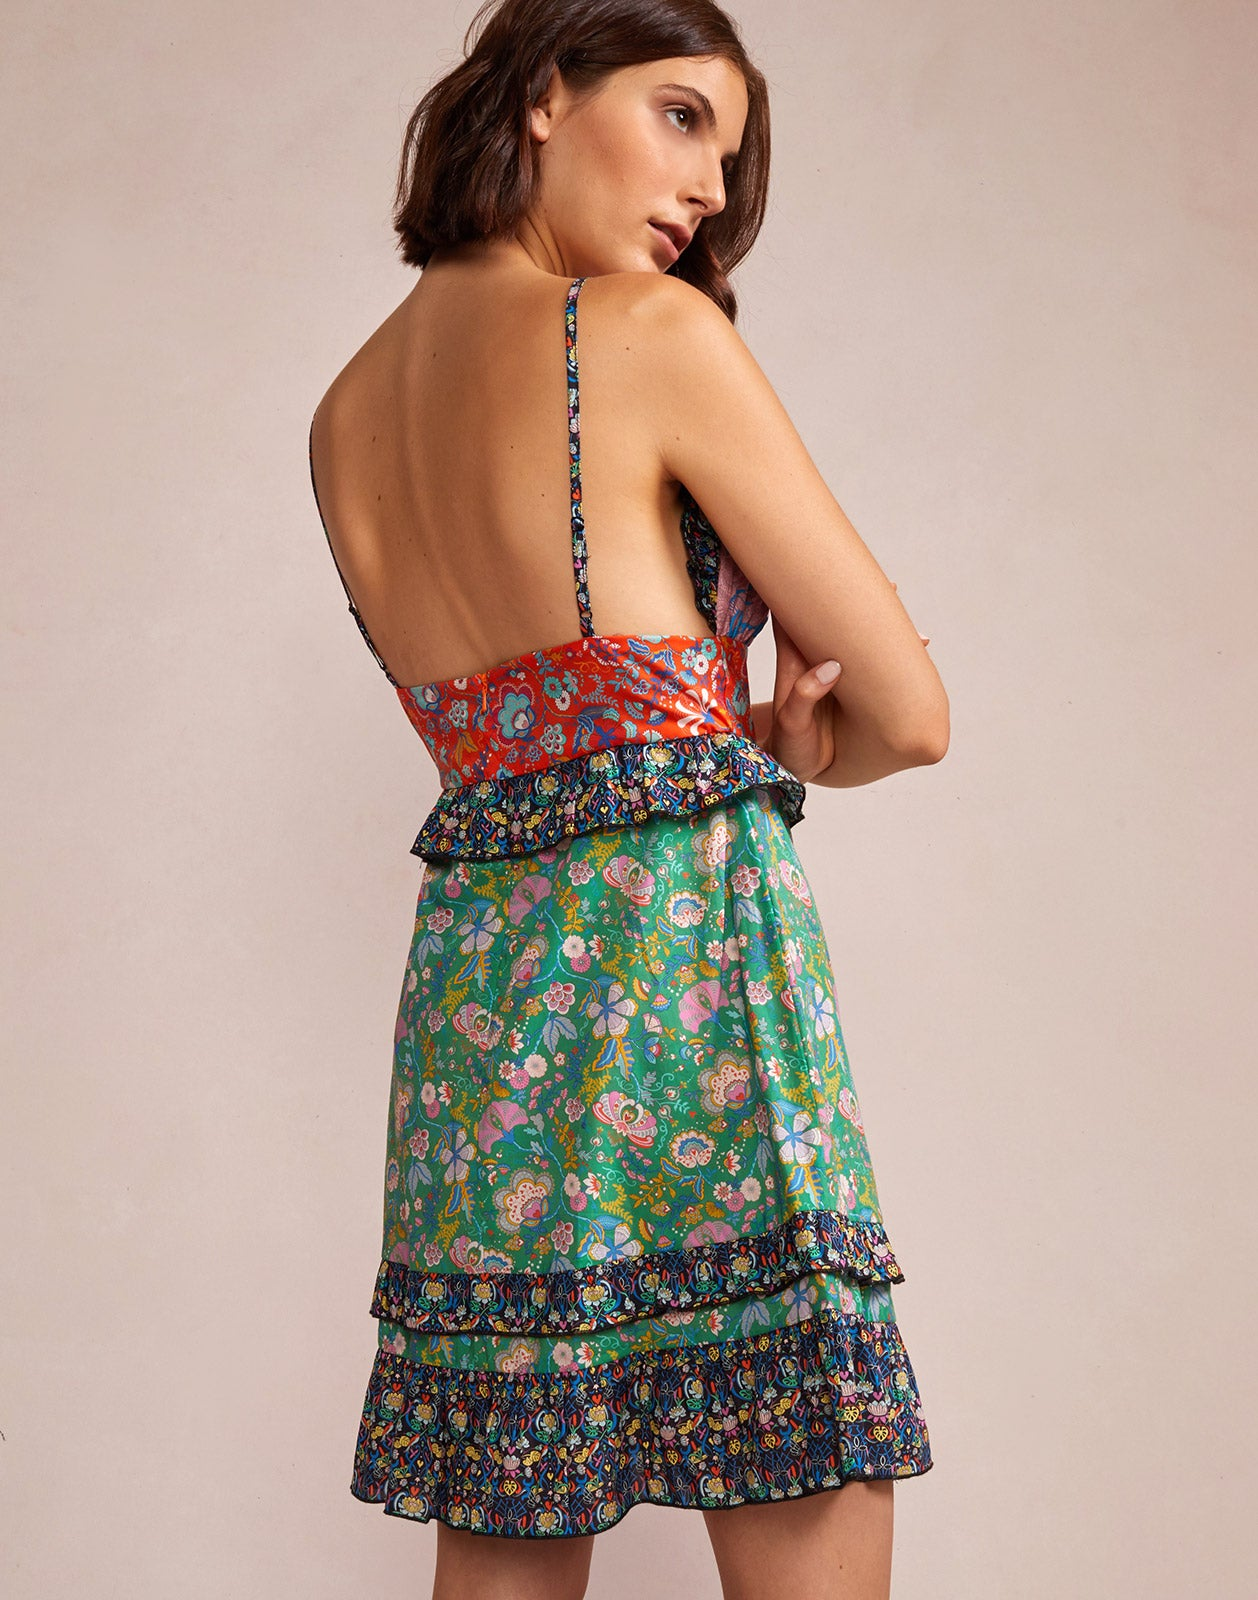 Alternate back view model wearing Charlotte Patchwork Mini Dress